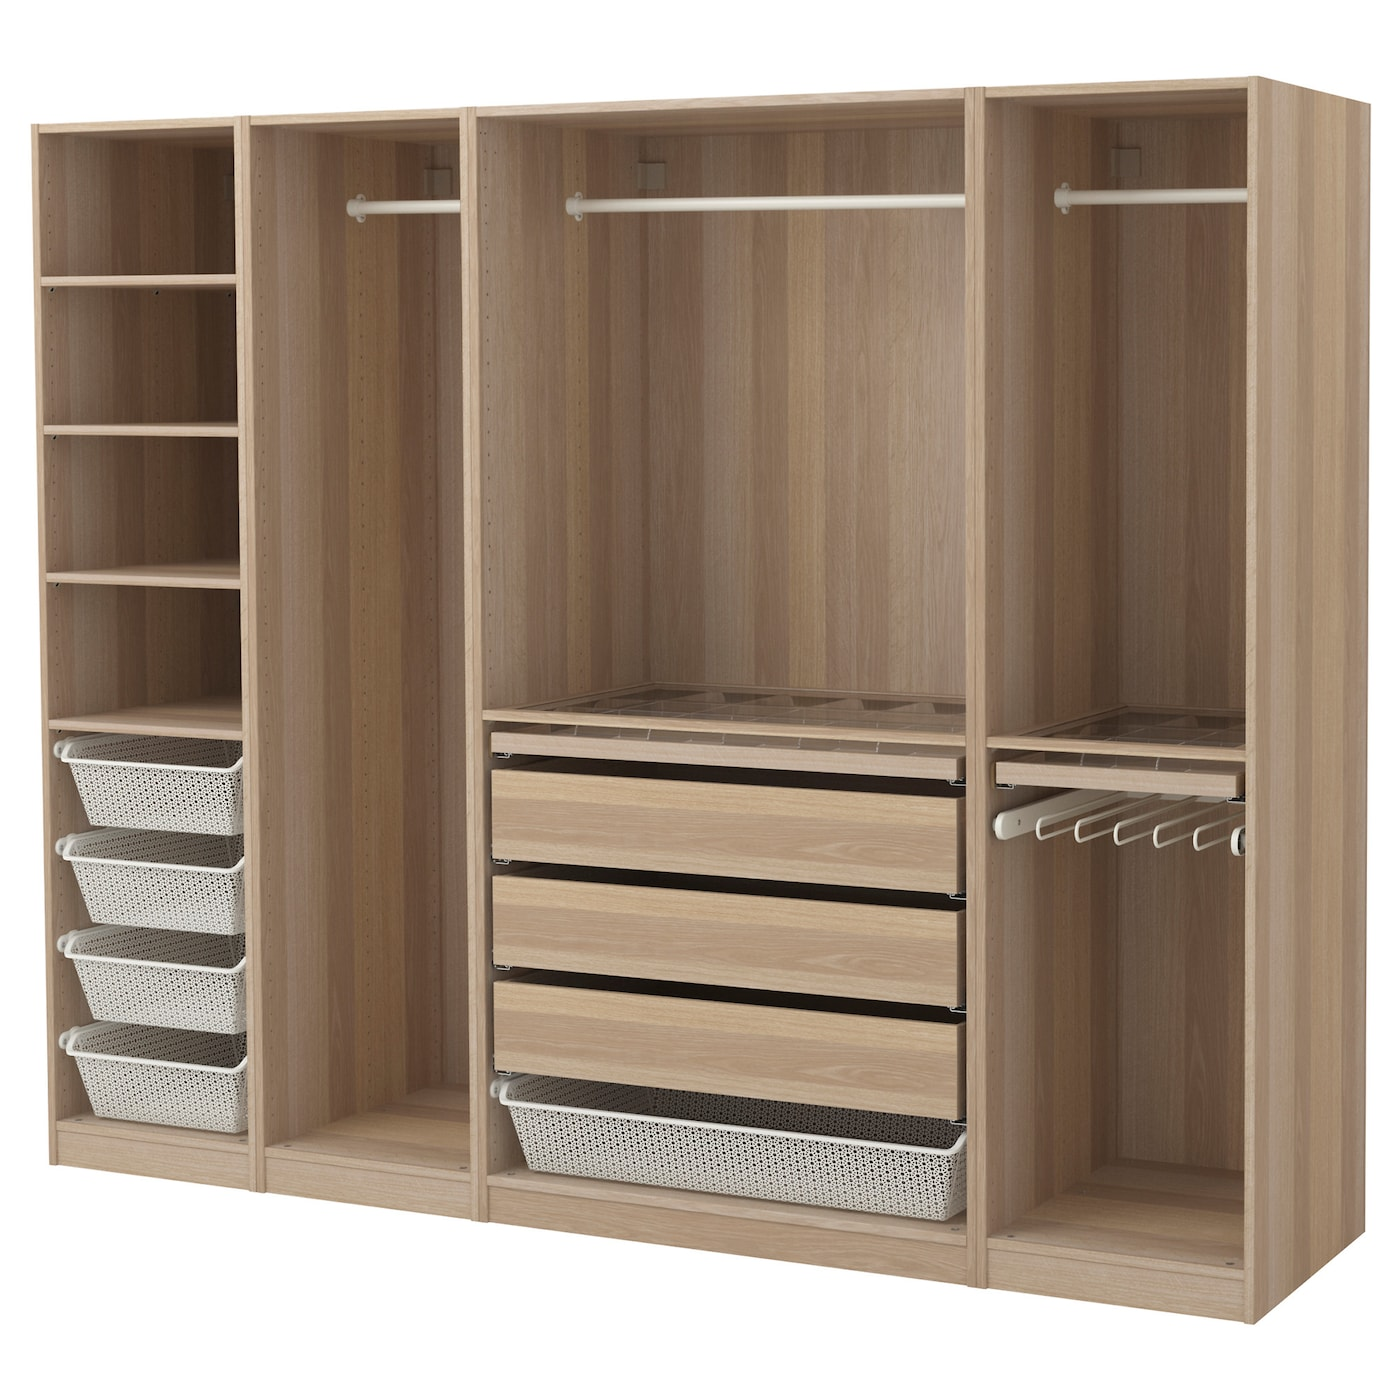 from pax without wardrobe planner imagination ikea home wardrobes design dream reduced tools system plan doors planning